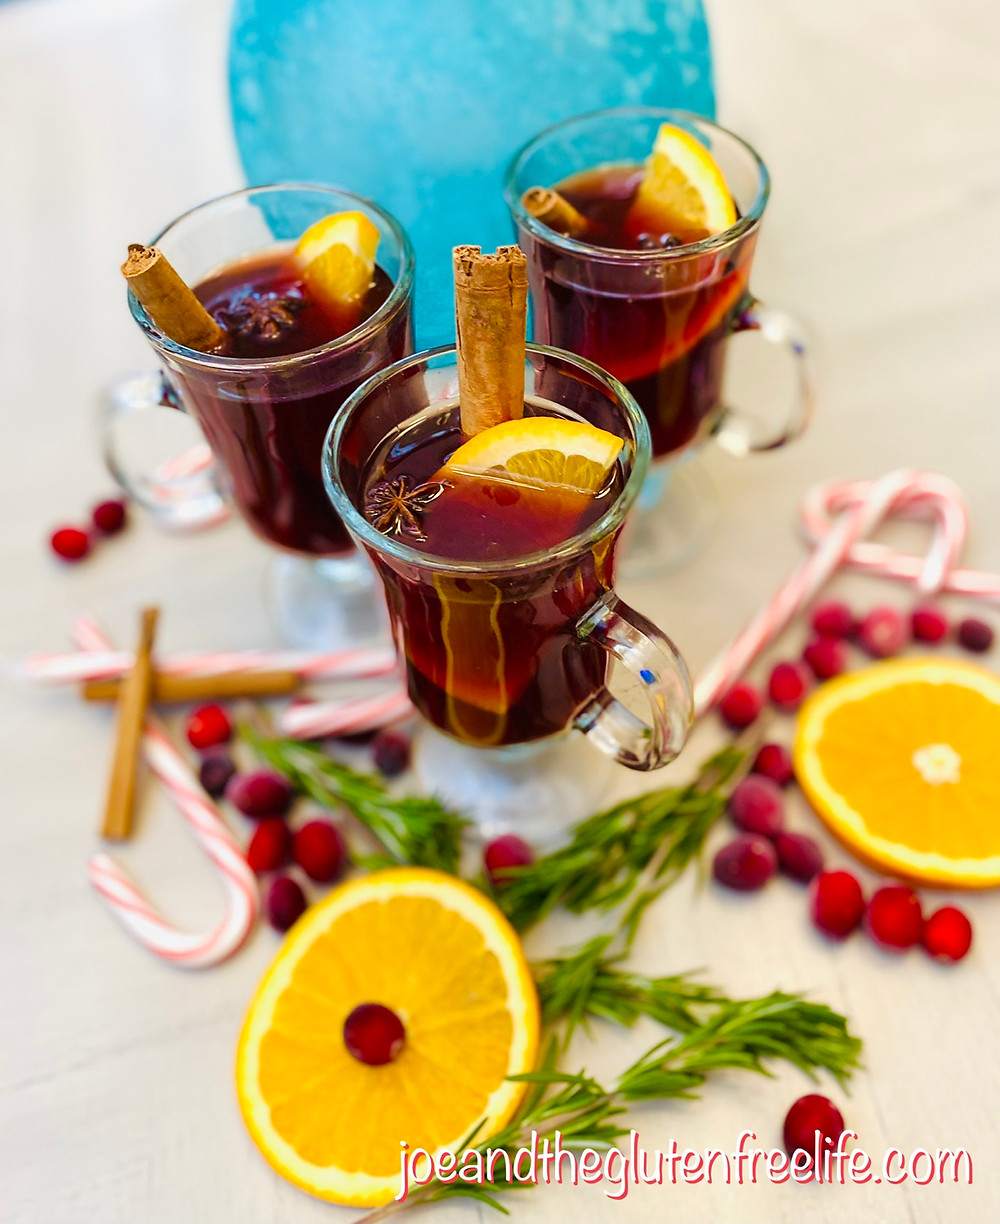 Sweet Red Wine with Apple Cider, aromatics, and Spices: The perfect libation for your Holiday Celebrations!